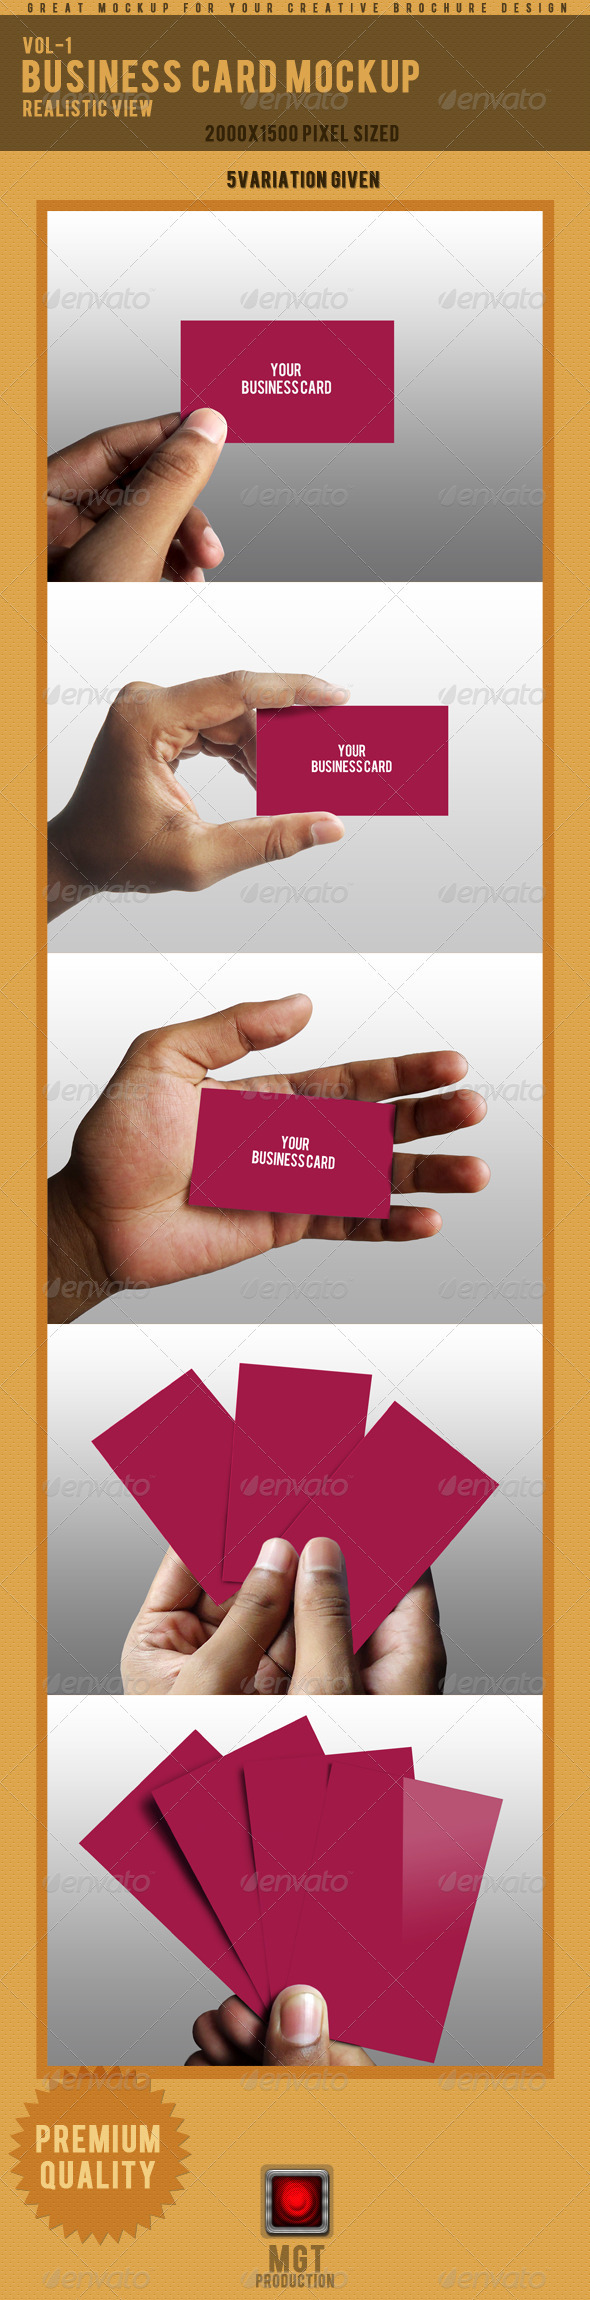 Photo Real Business Card Mockup - 1